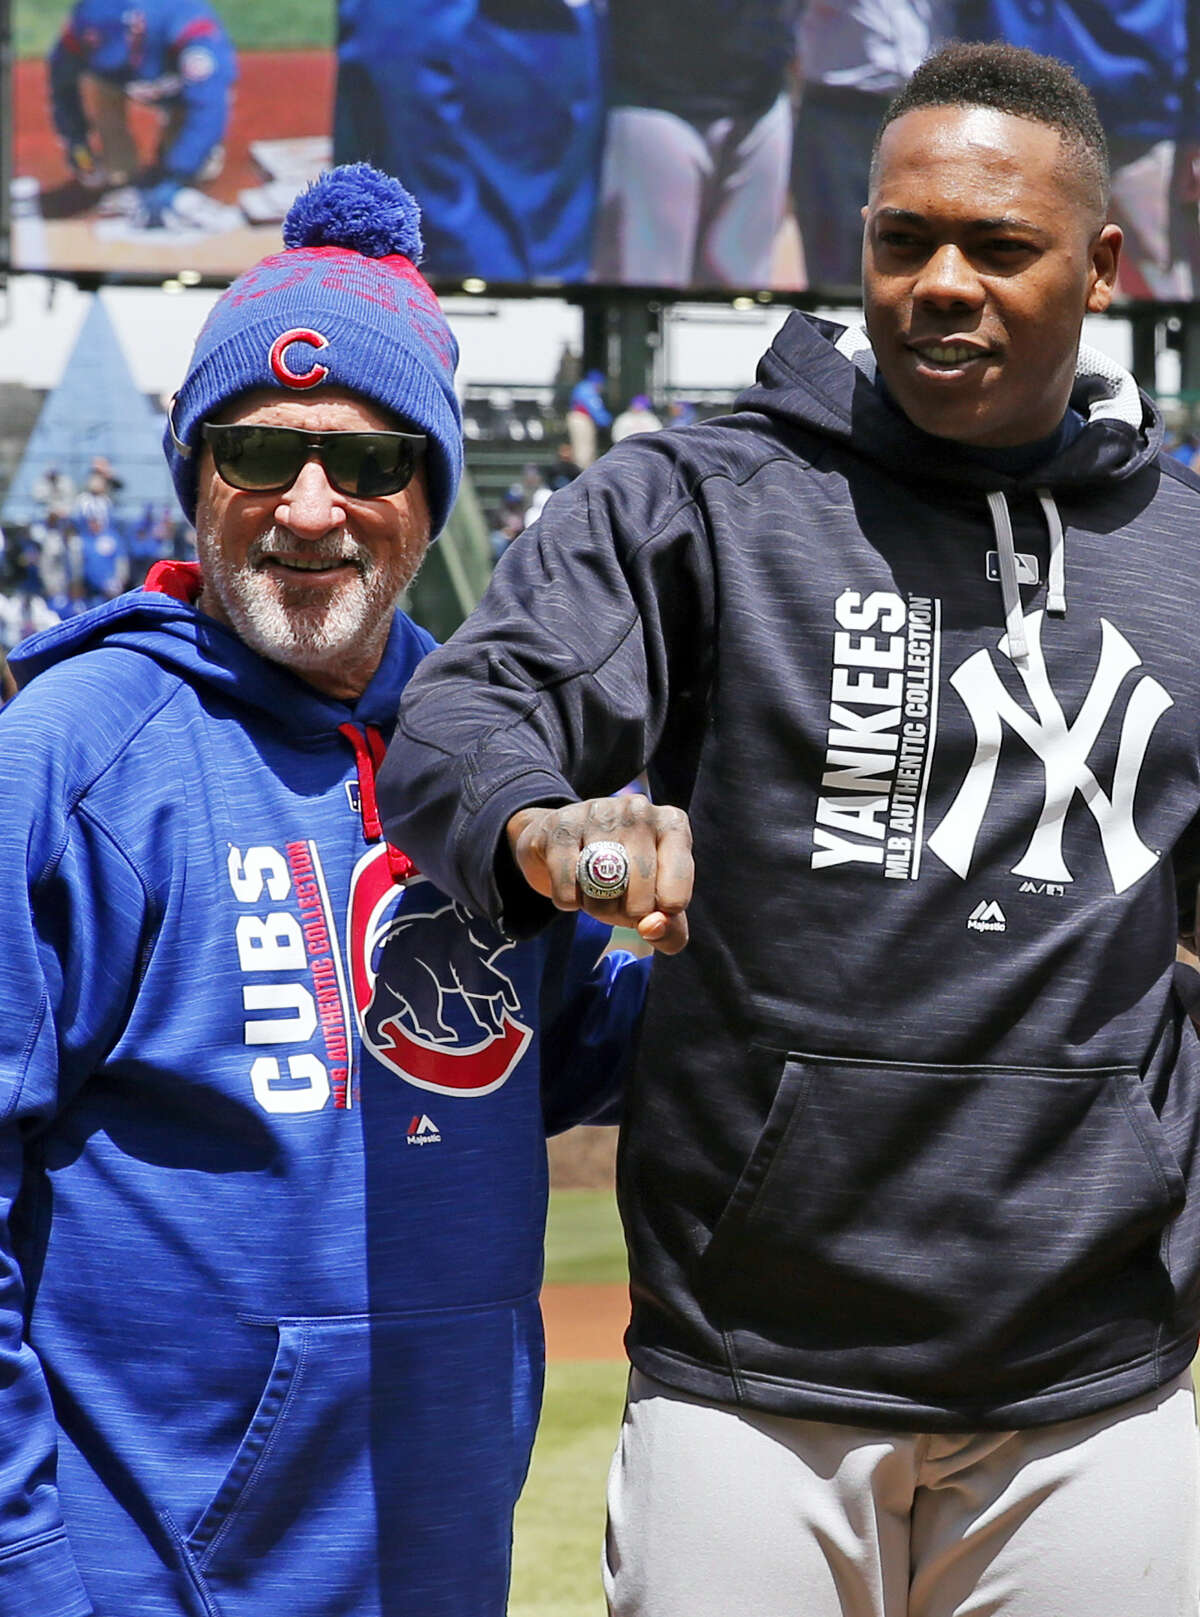 Yankees relief pitcher Aroldis Chapman, right, stands with Cubs manager Joe Maddon as Chapman received his 2016 World Series ring on Friday.